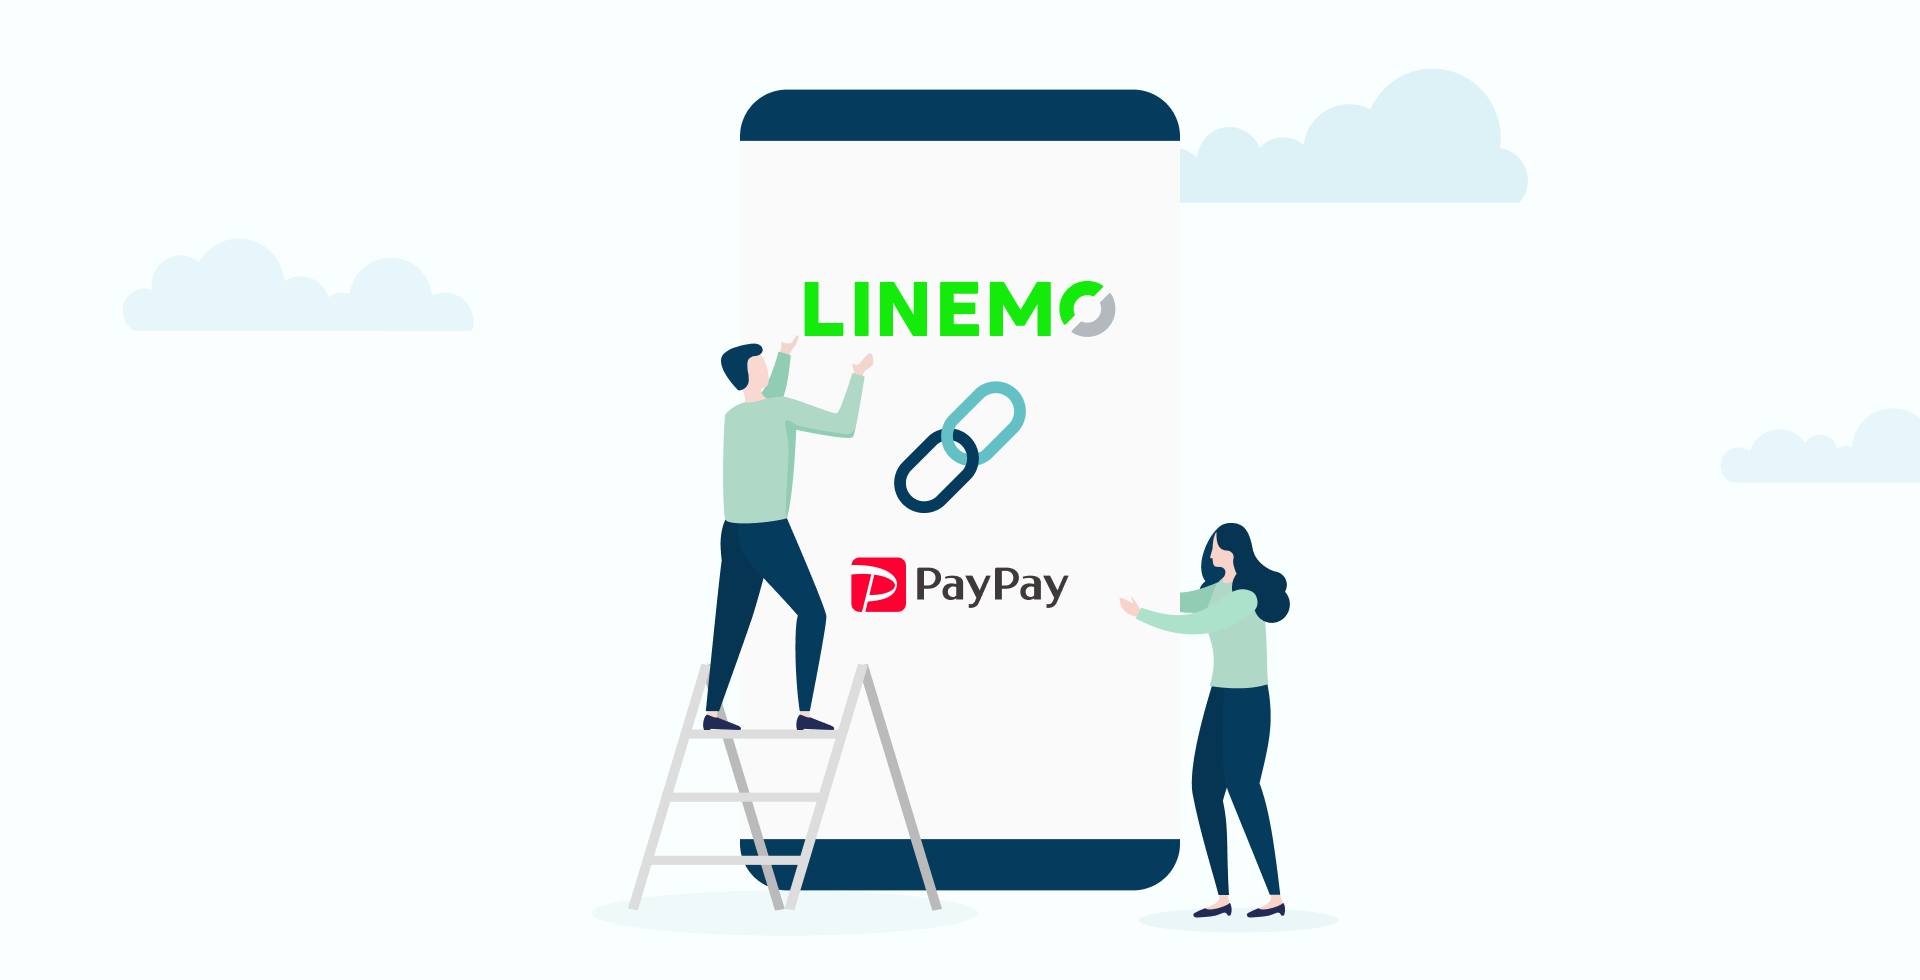 Easier Signup, Login, and Top-up for LINEMO Users on the PayPay App!